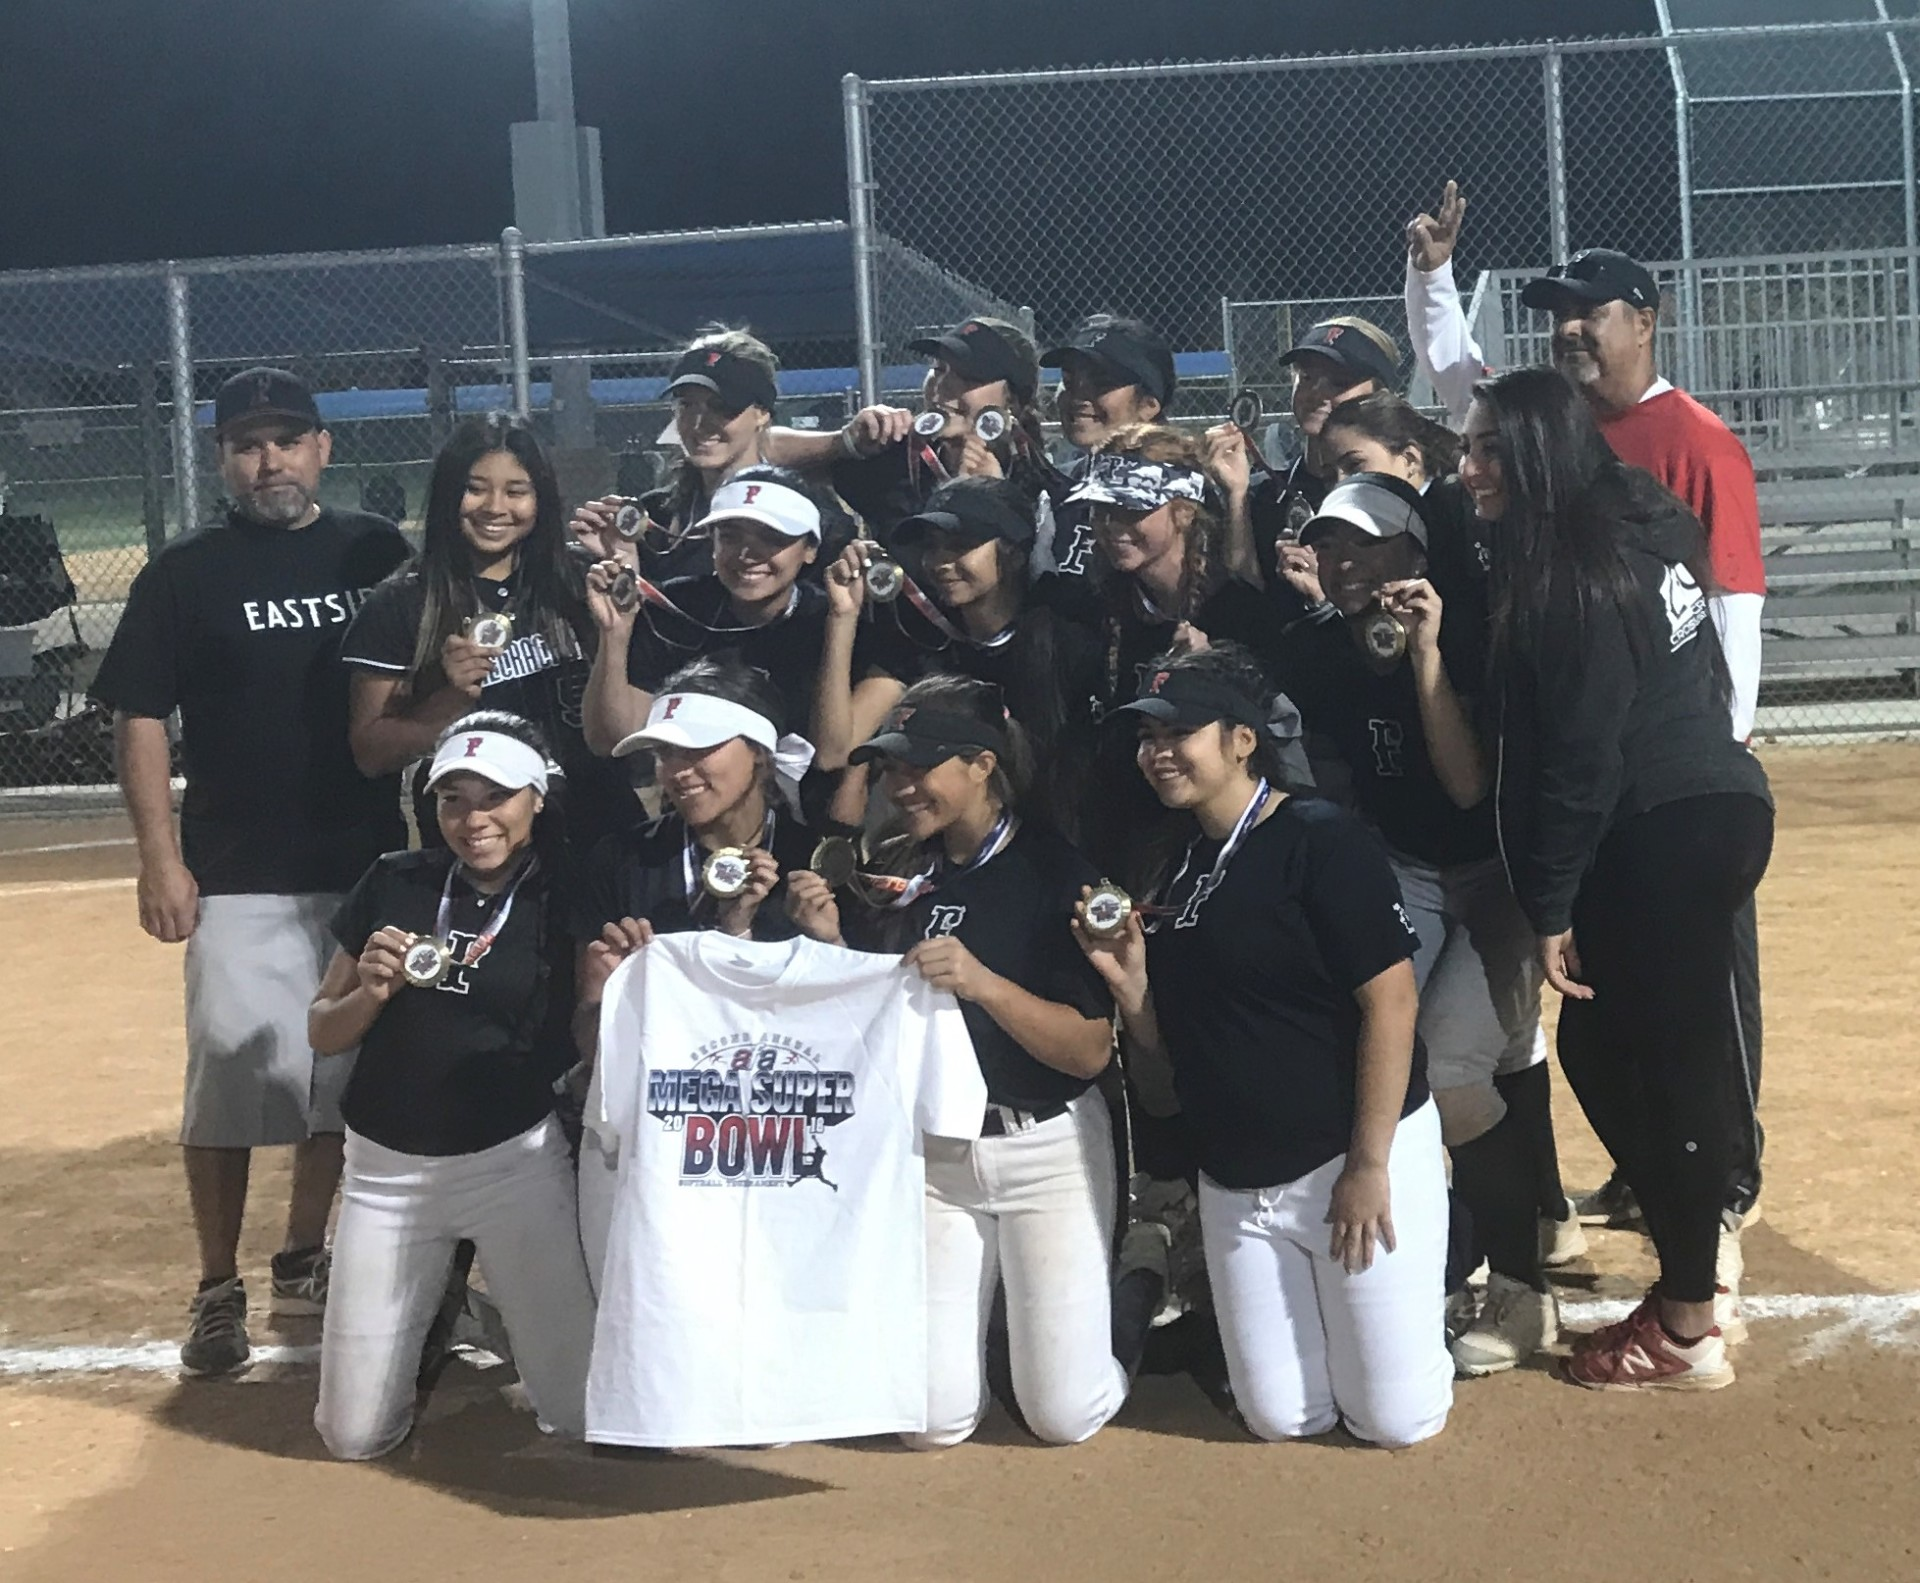 16u - 1st Place - Firecrackers - Eastside